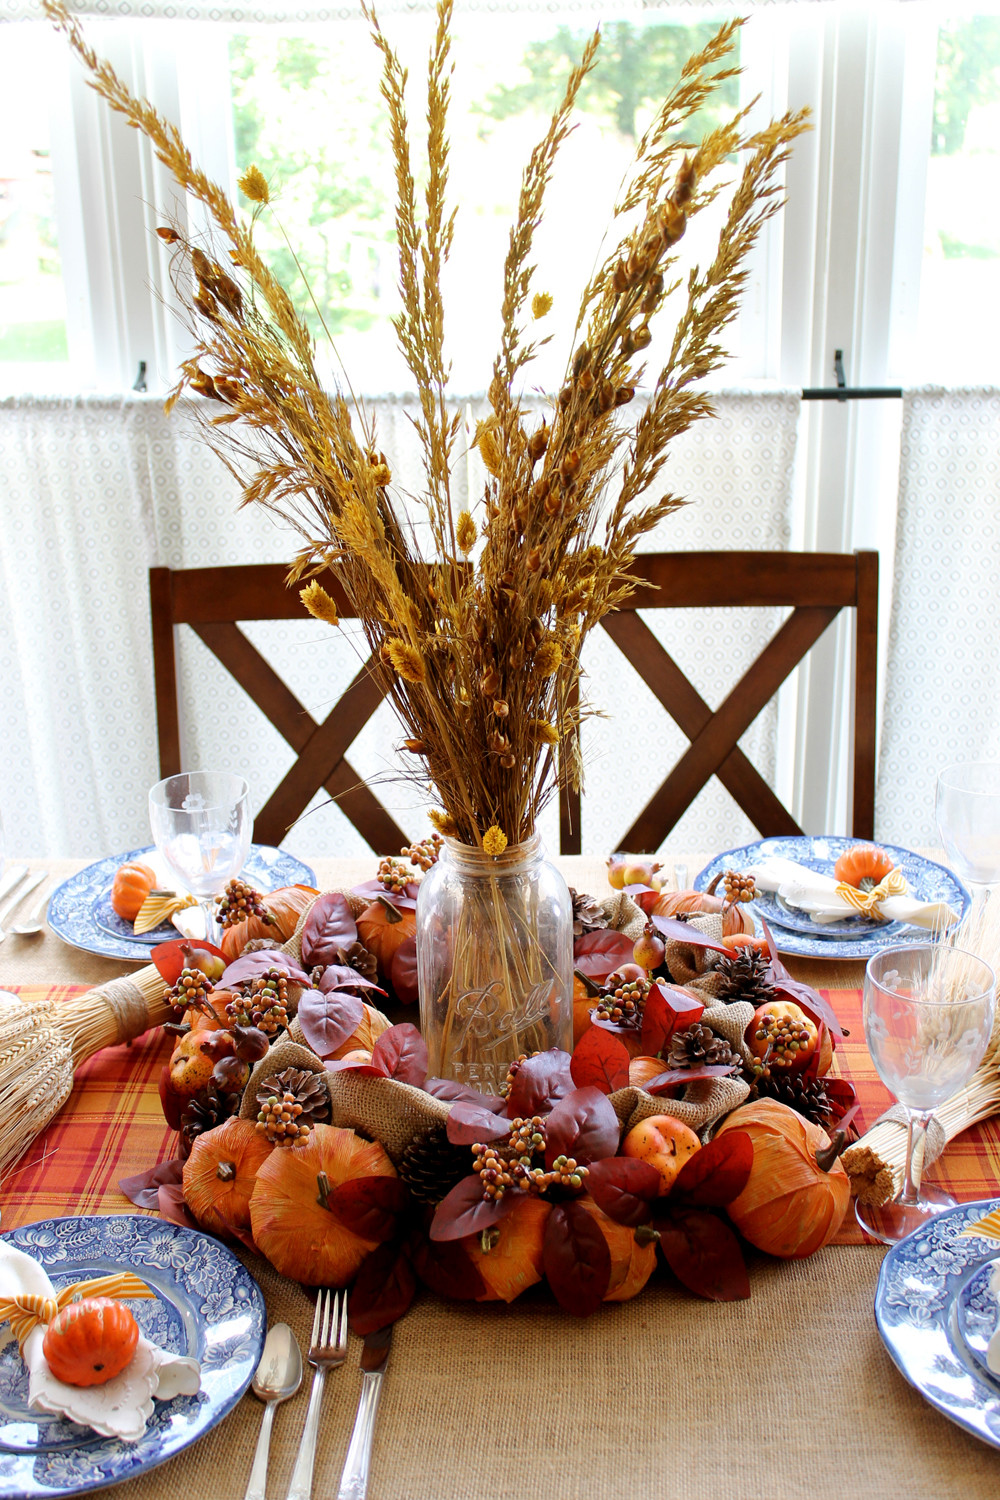 Best ideas about DIY Thanksgiving Table Decorations . Save or Pin DIY Thanksgiving Decorations for Your Table The Country Now.